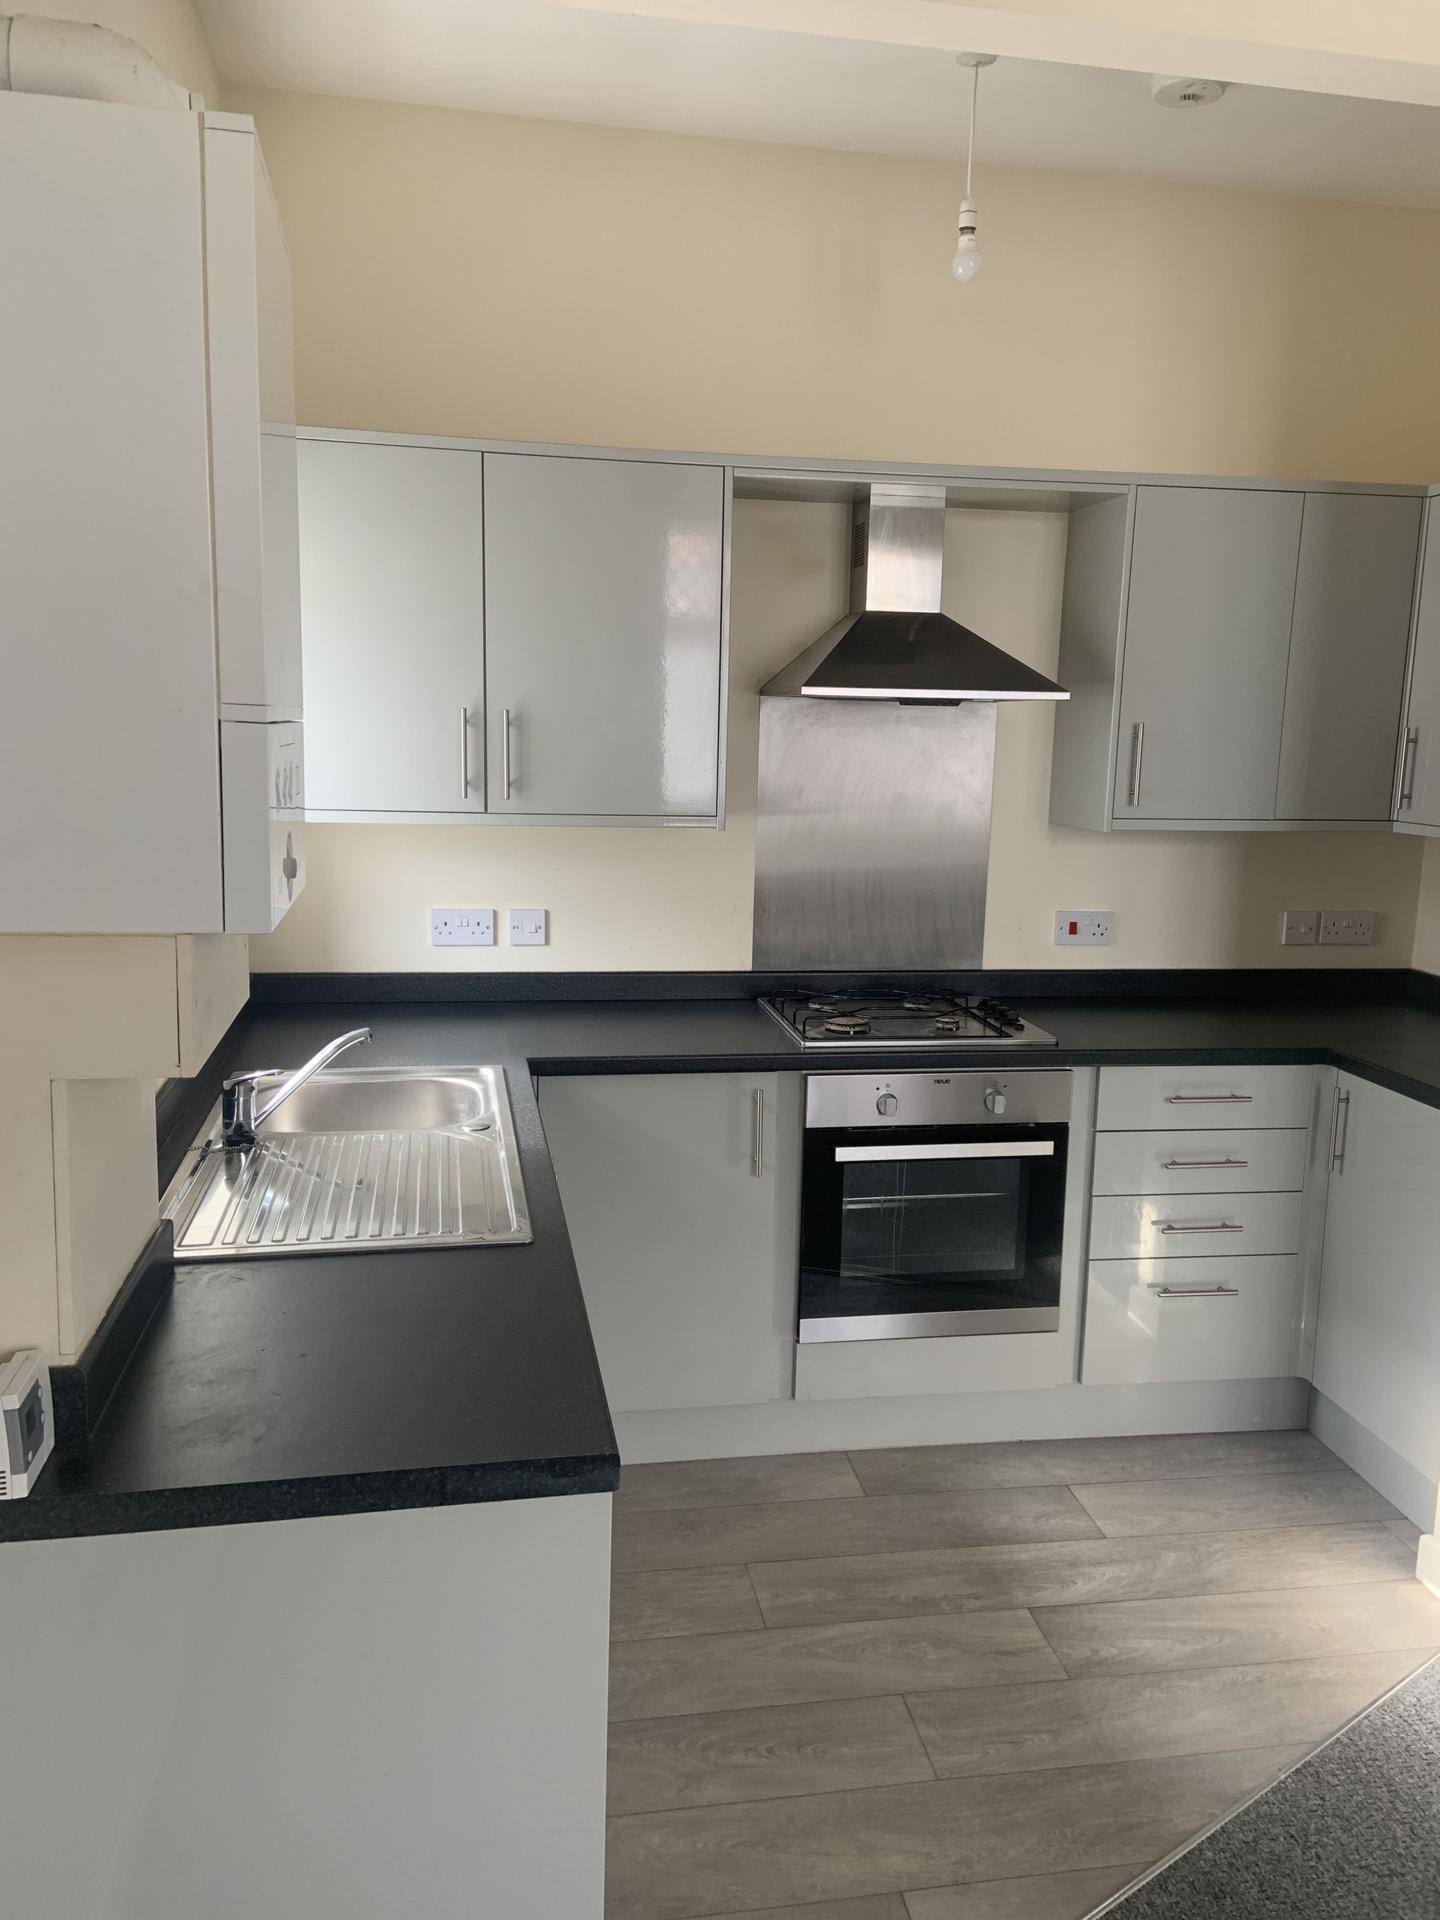 2 bed flat to rent in High Street, Broadstairs, CT10